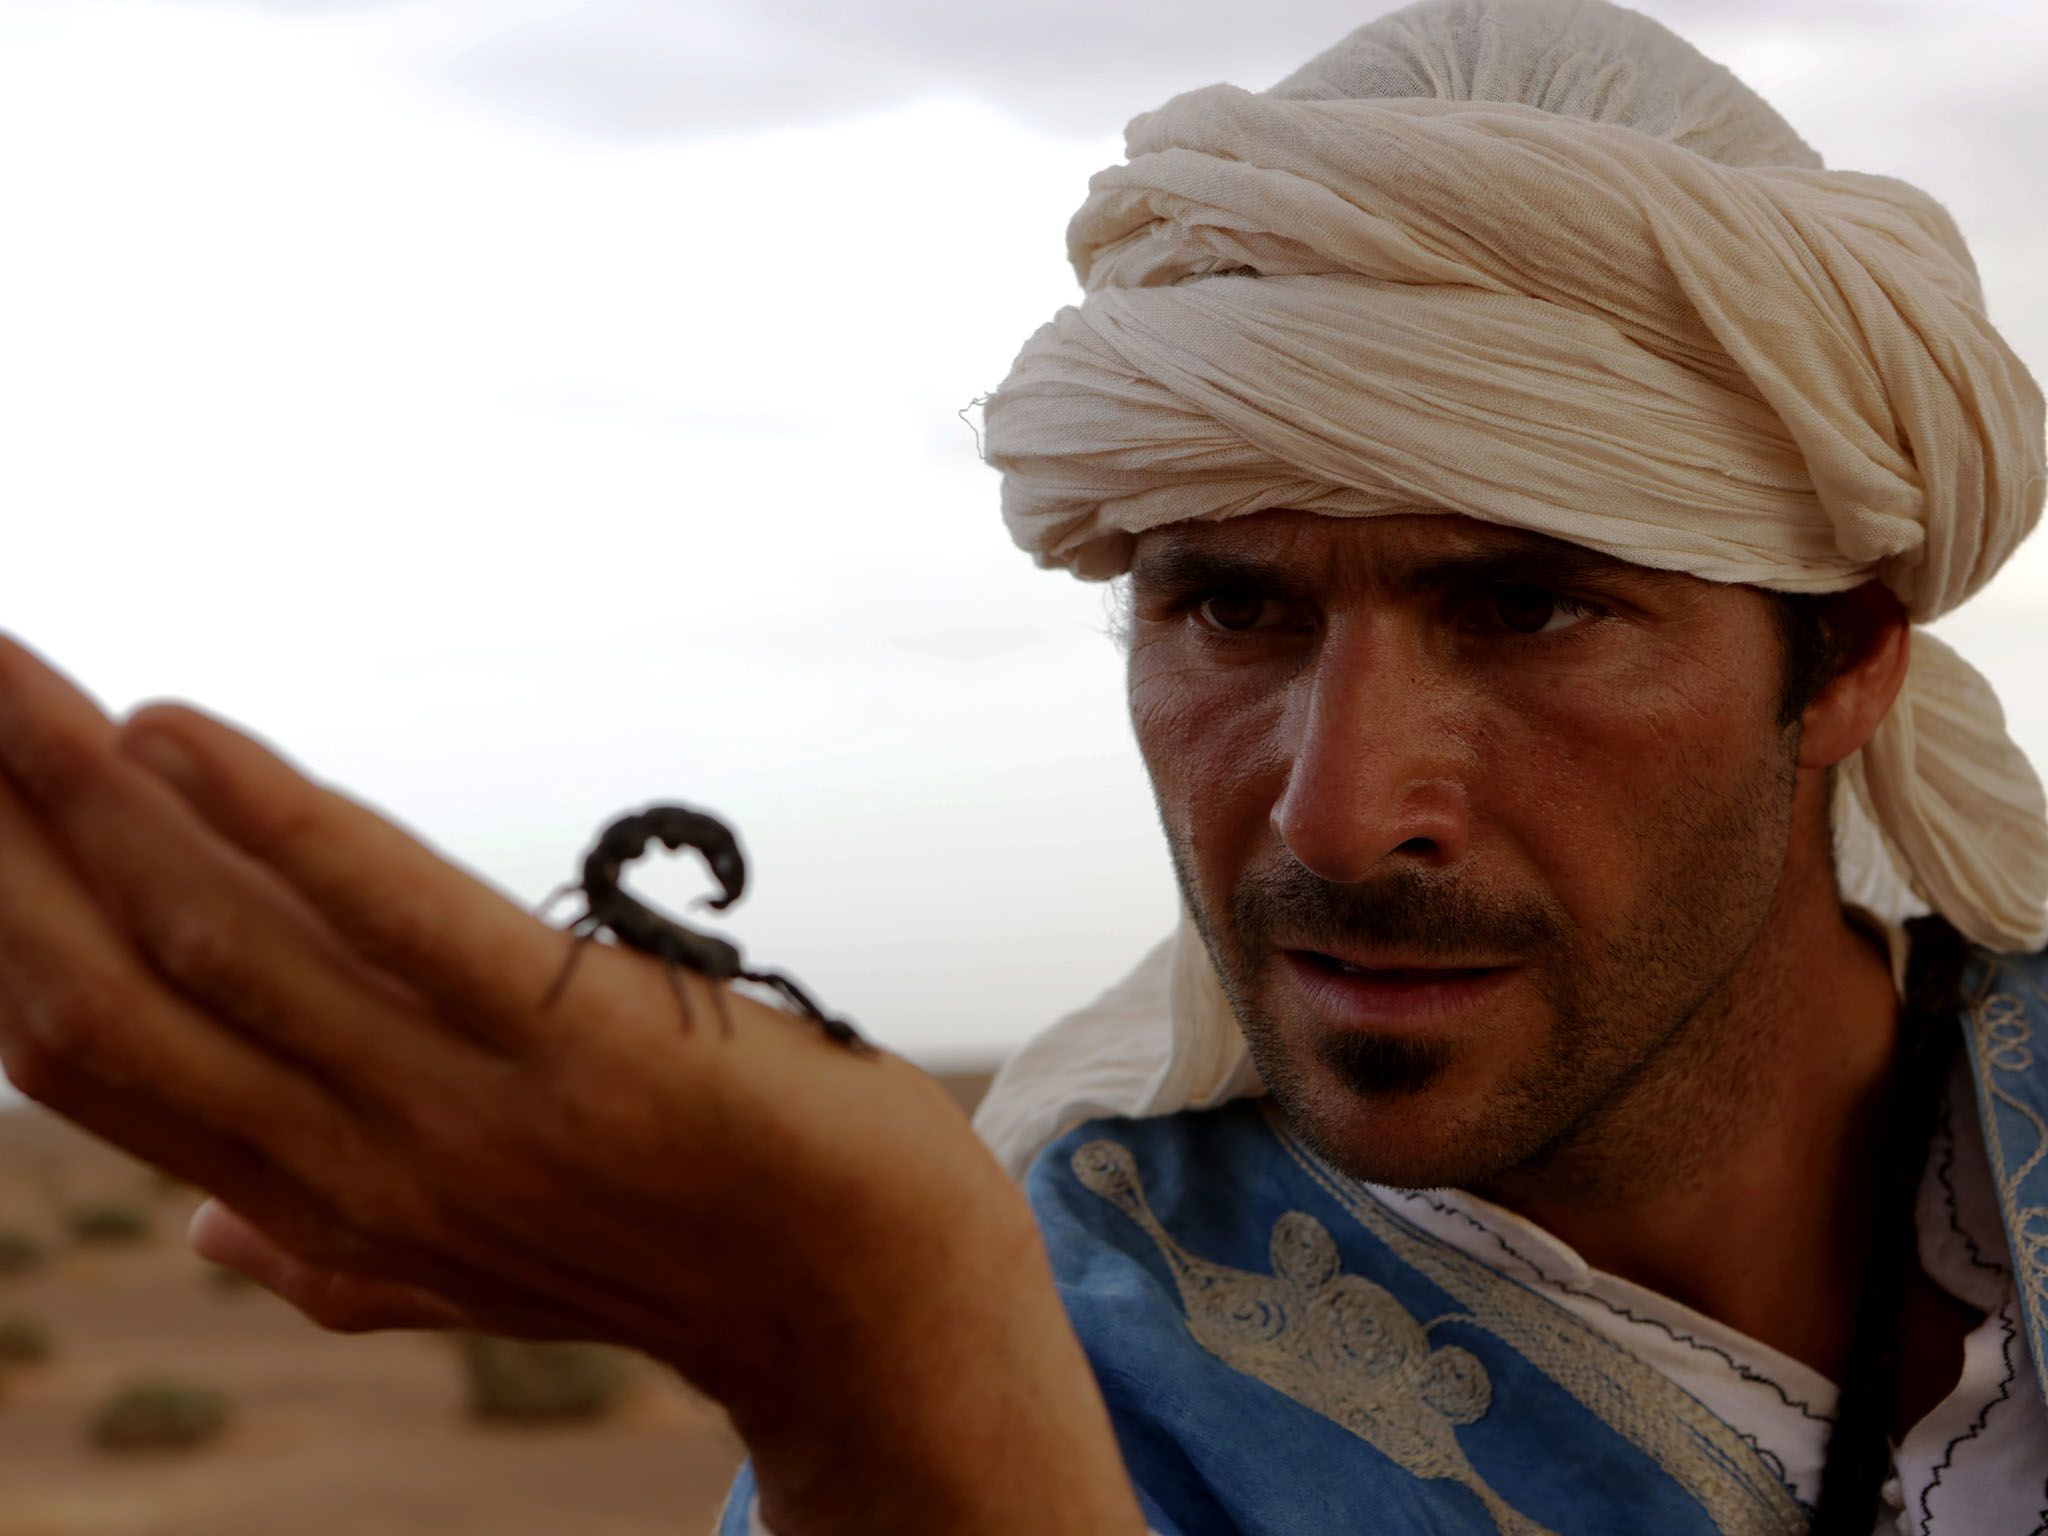 Morocco: Hazen holds a poisonous scorpion. This image is from Primal Survivor. [Photo of the day - January 2016]